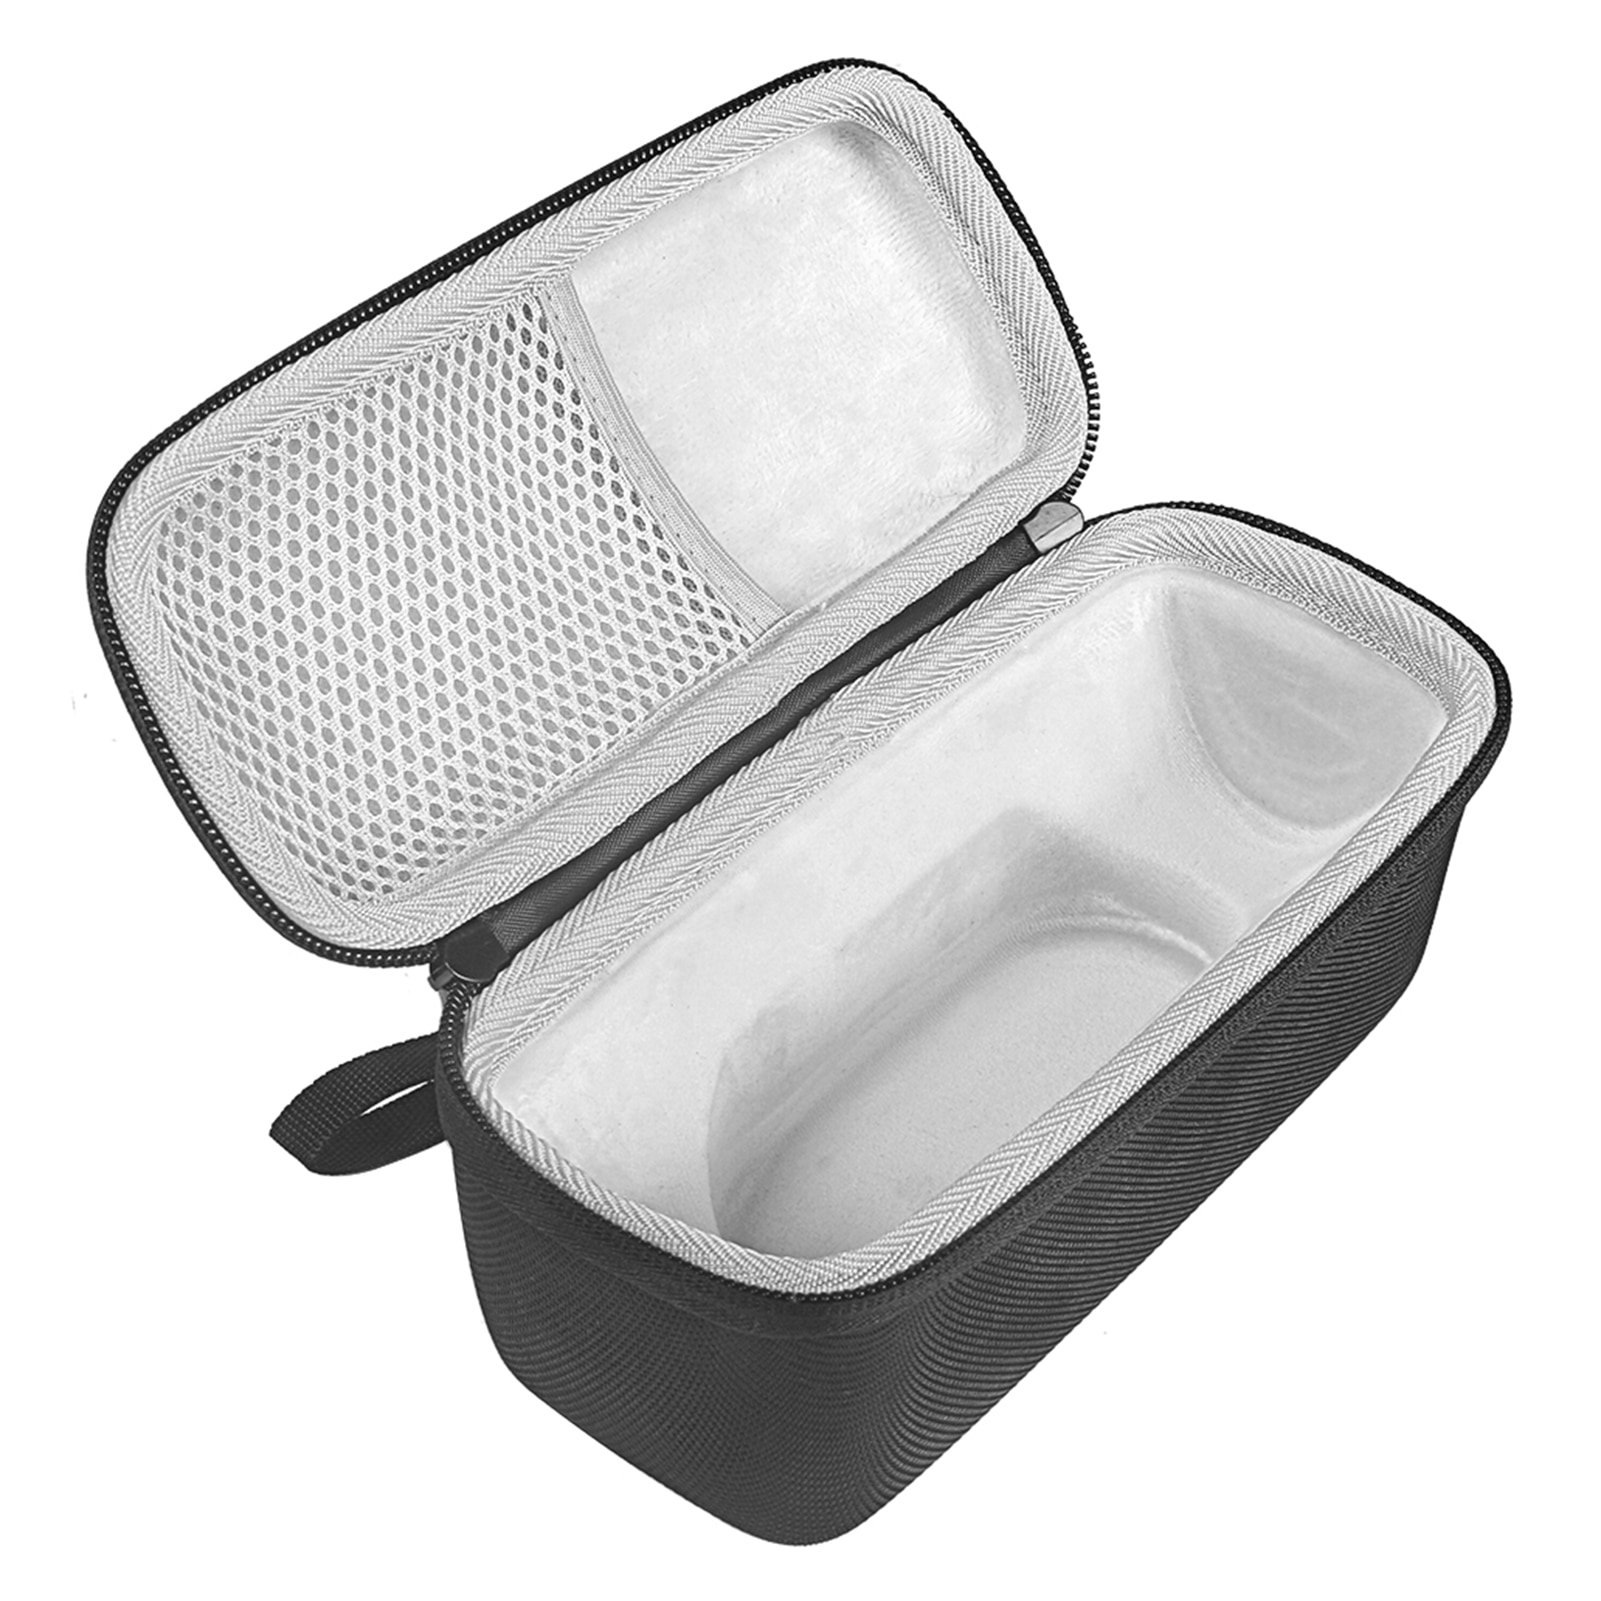 New Anti-scratch Carrying Case Storage Bag Protect Pouch Sleeve Cover Travel Case For Sonos Roam Bluetooth Speaker Shockproof